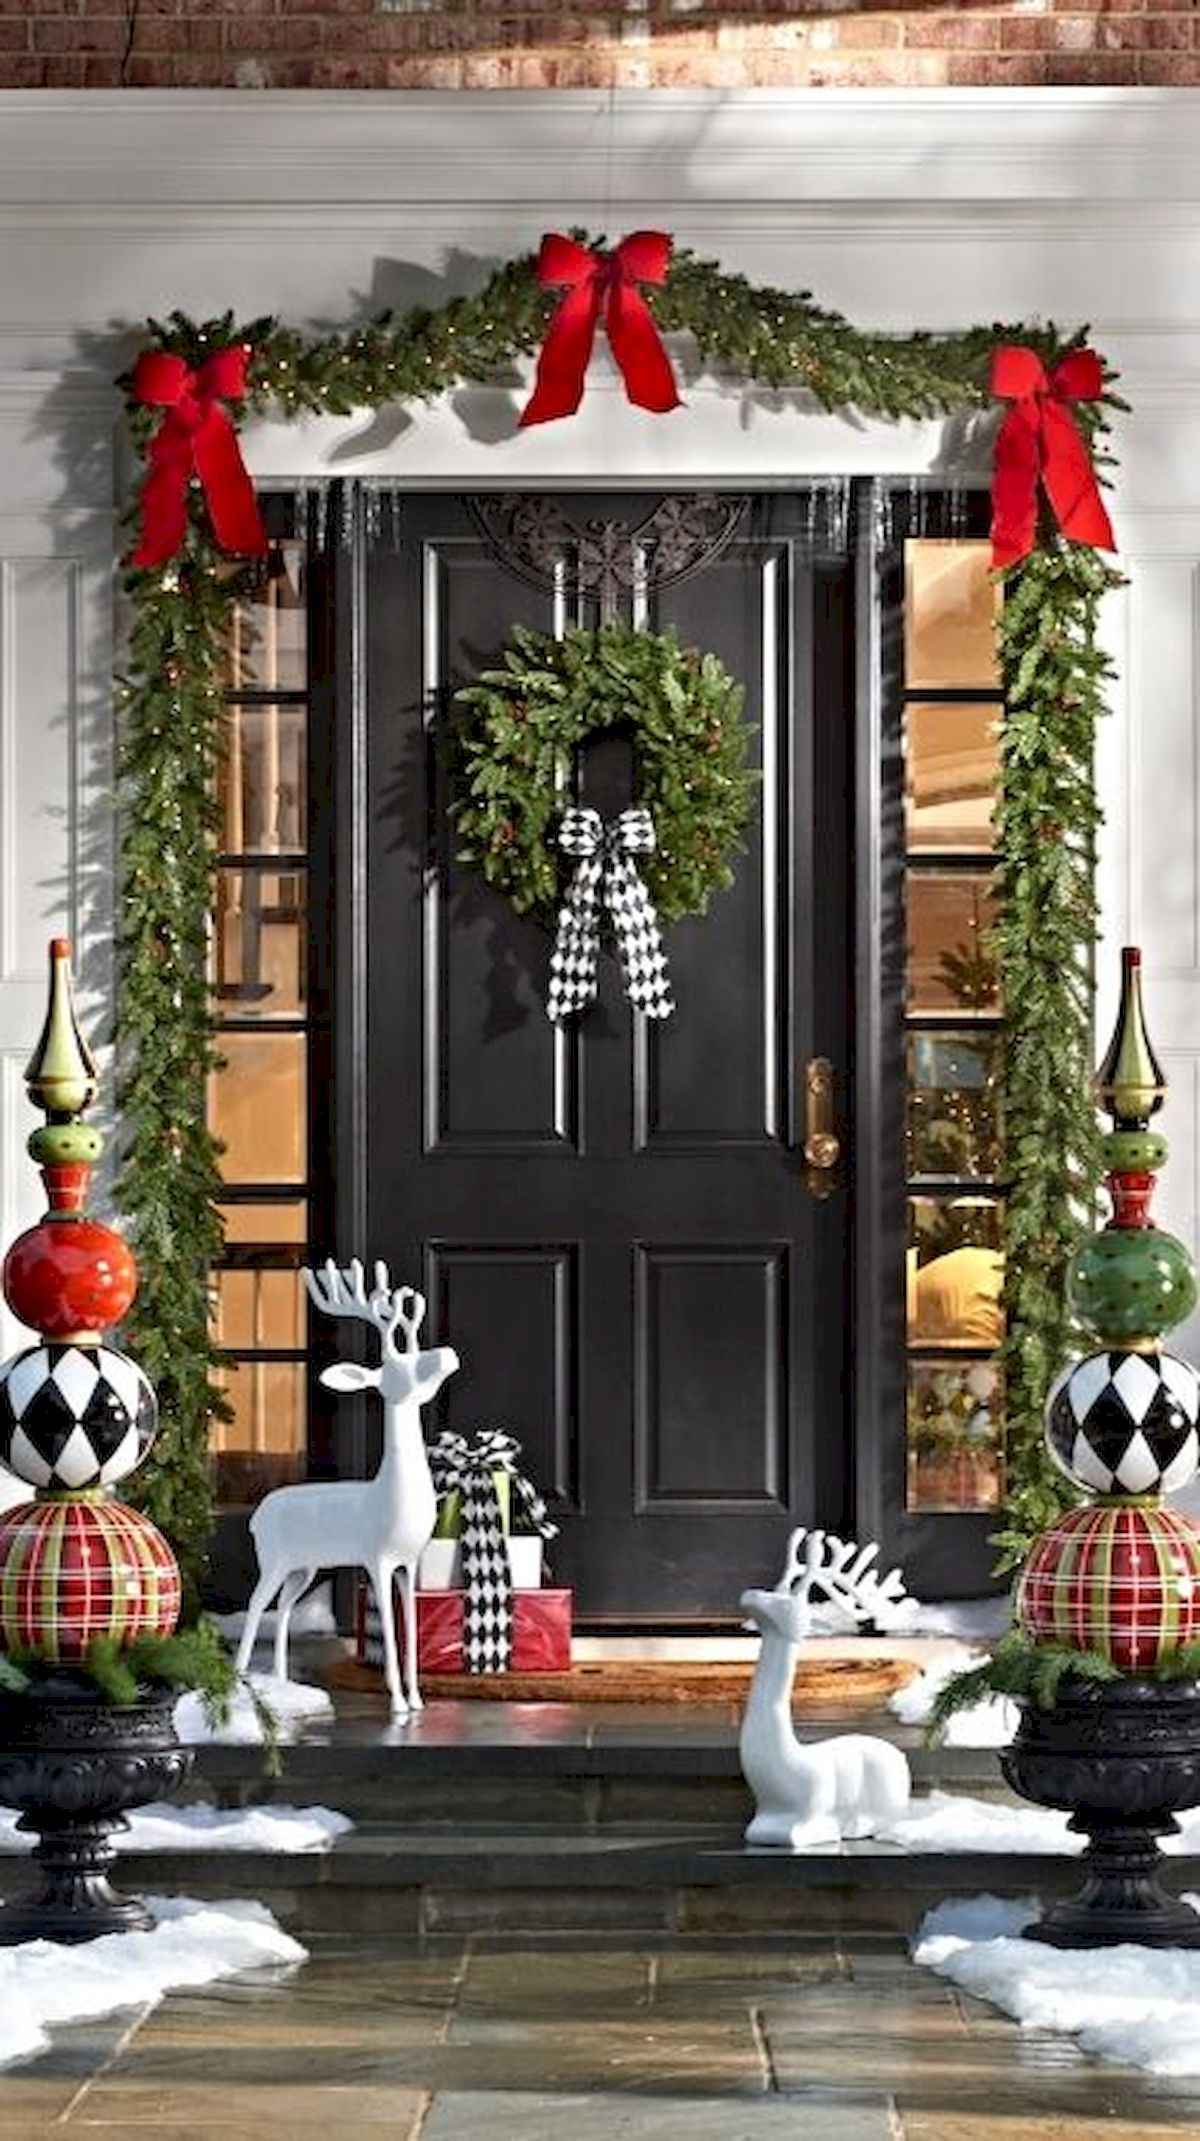 1200 2141 in 50 front porches farmhouse christmas decorations ideas